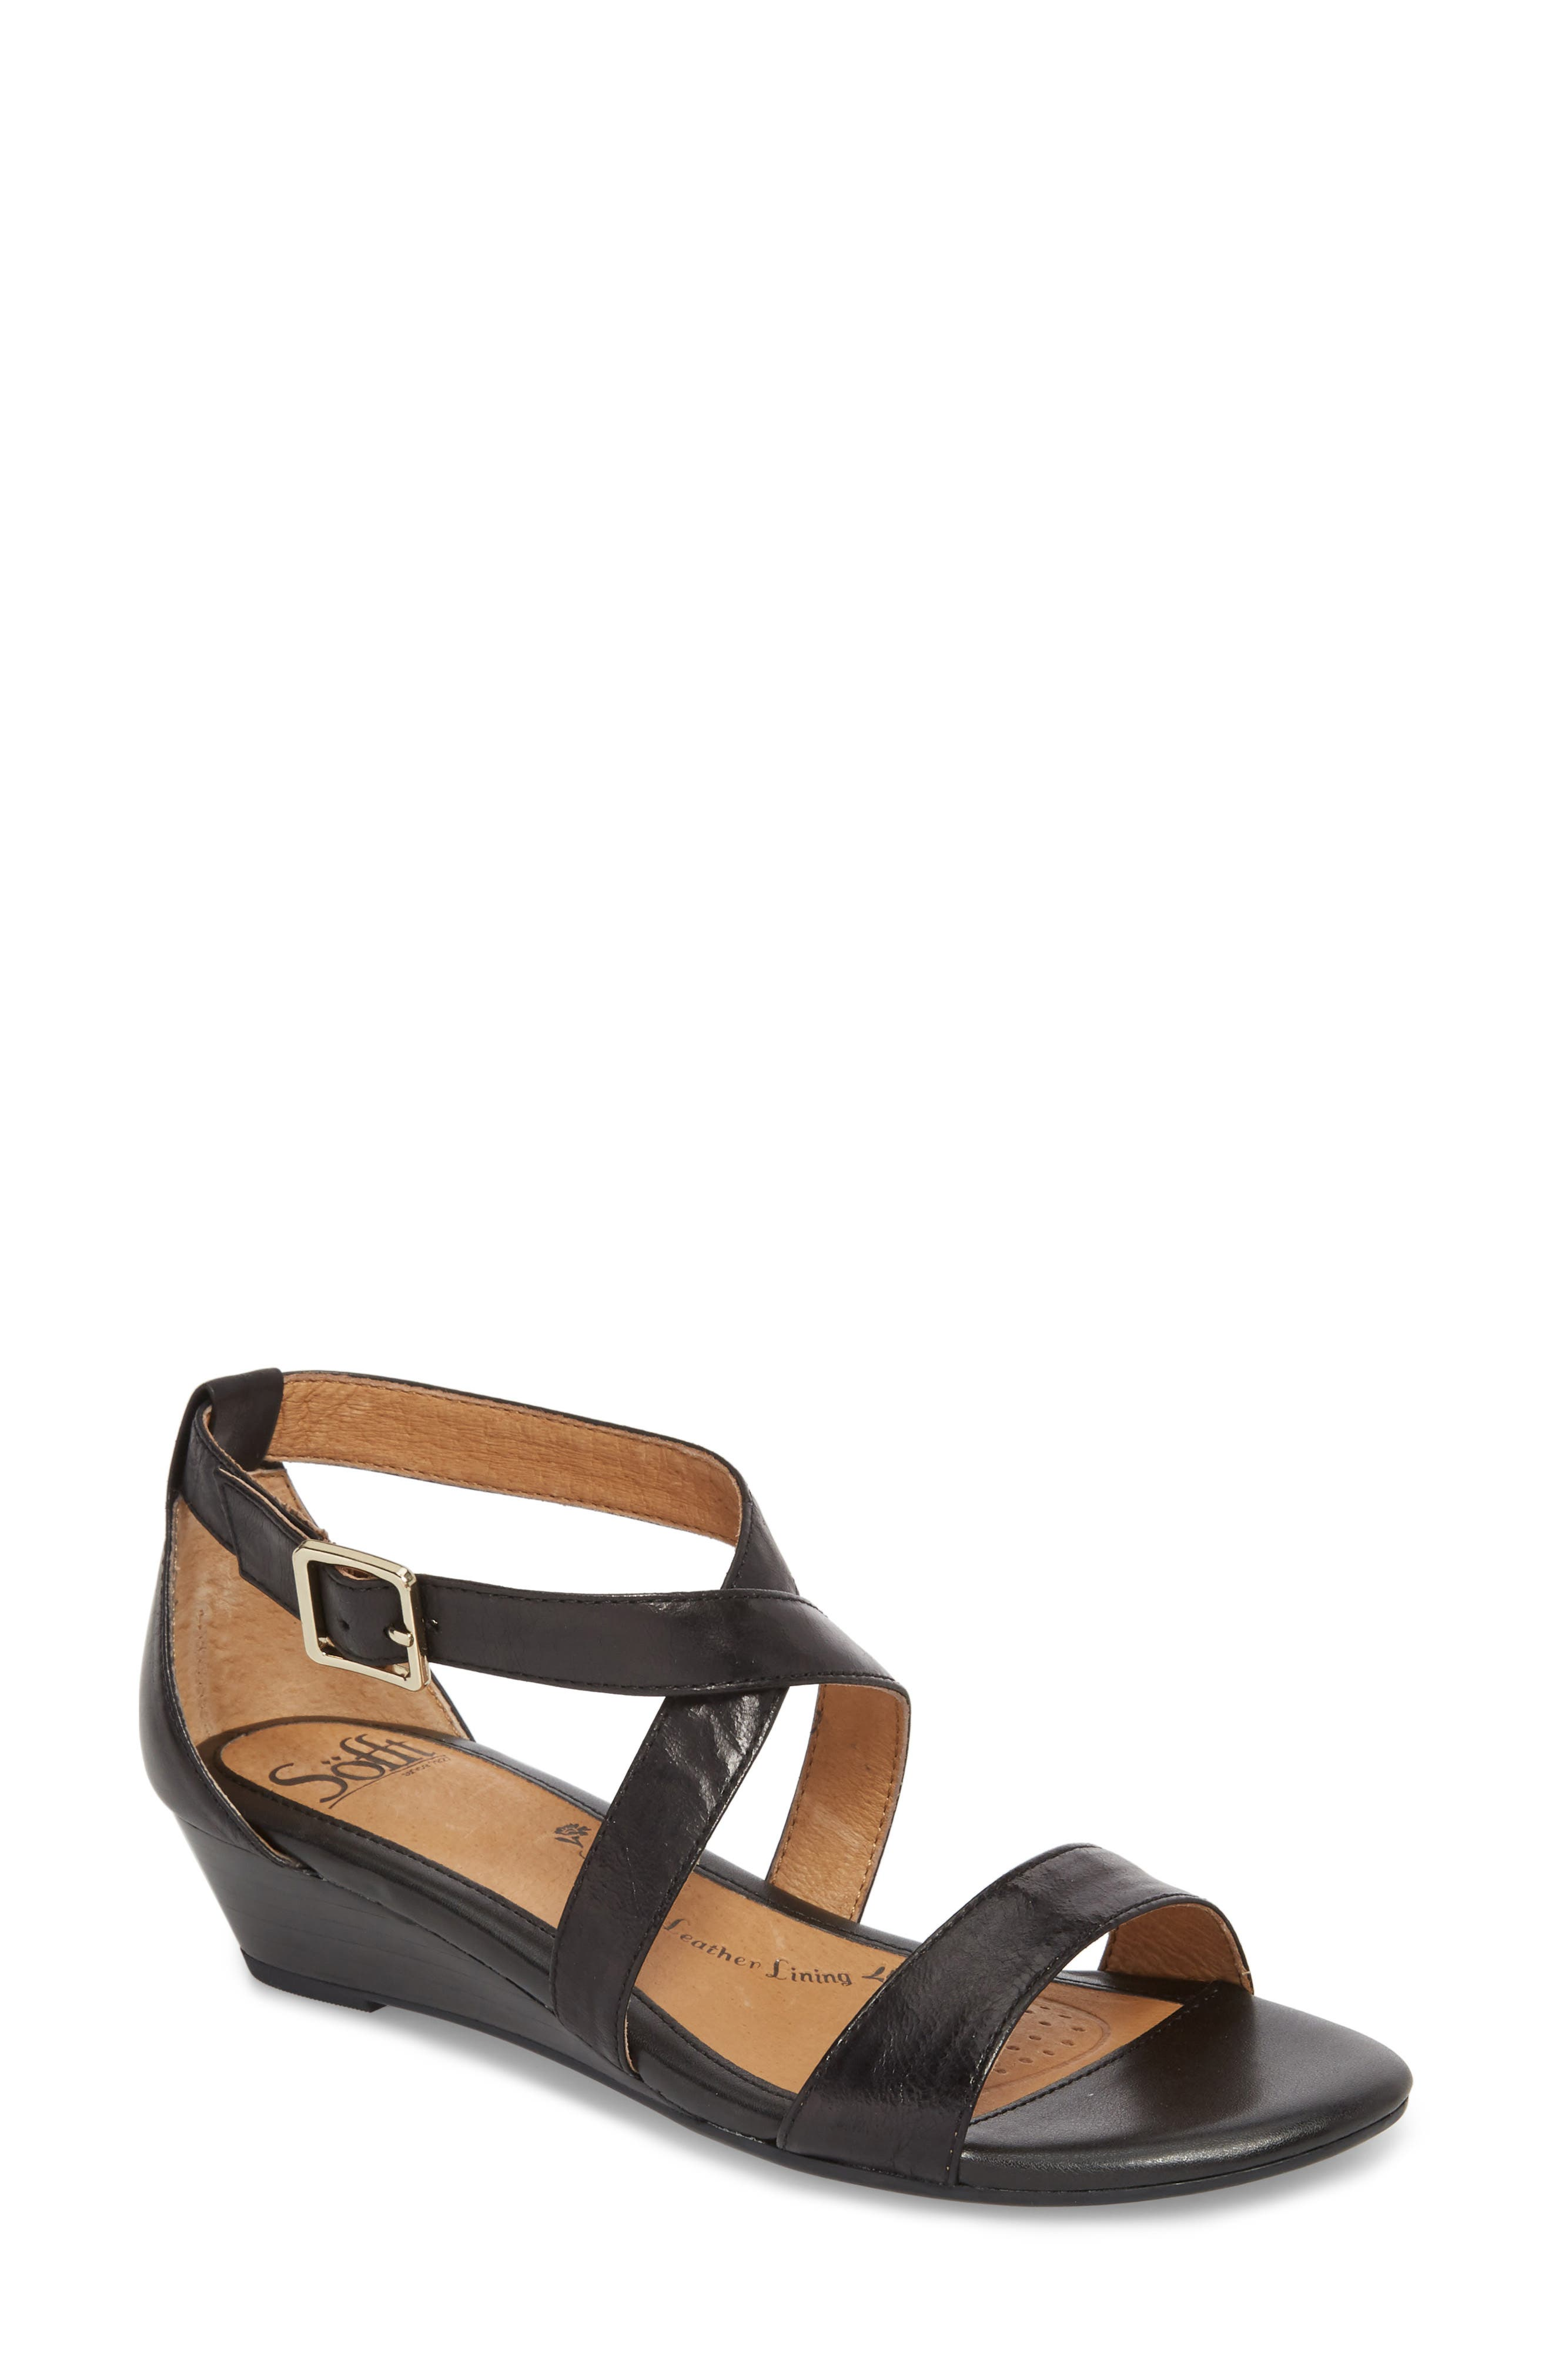 'Innis' Low Wedge Sandal,                         Main,                         color, Black Leather